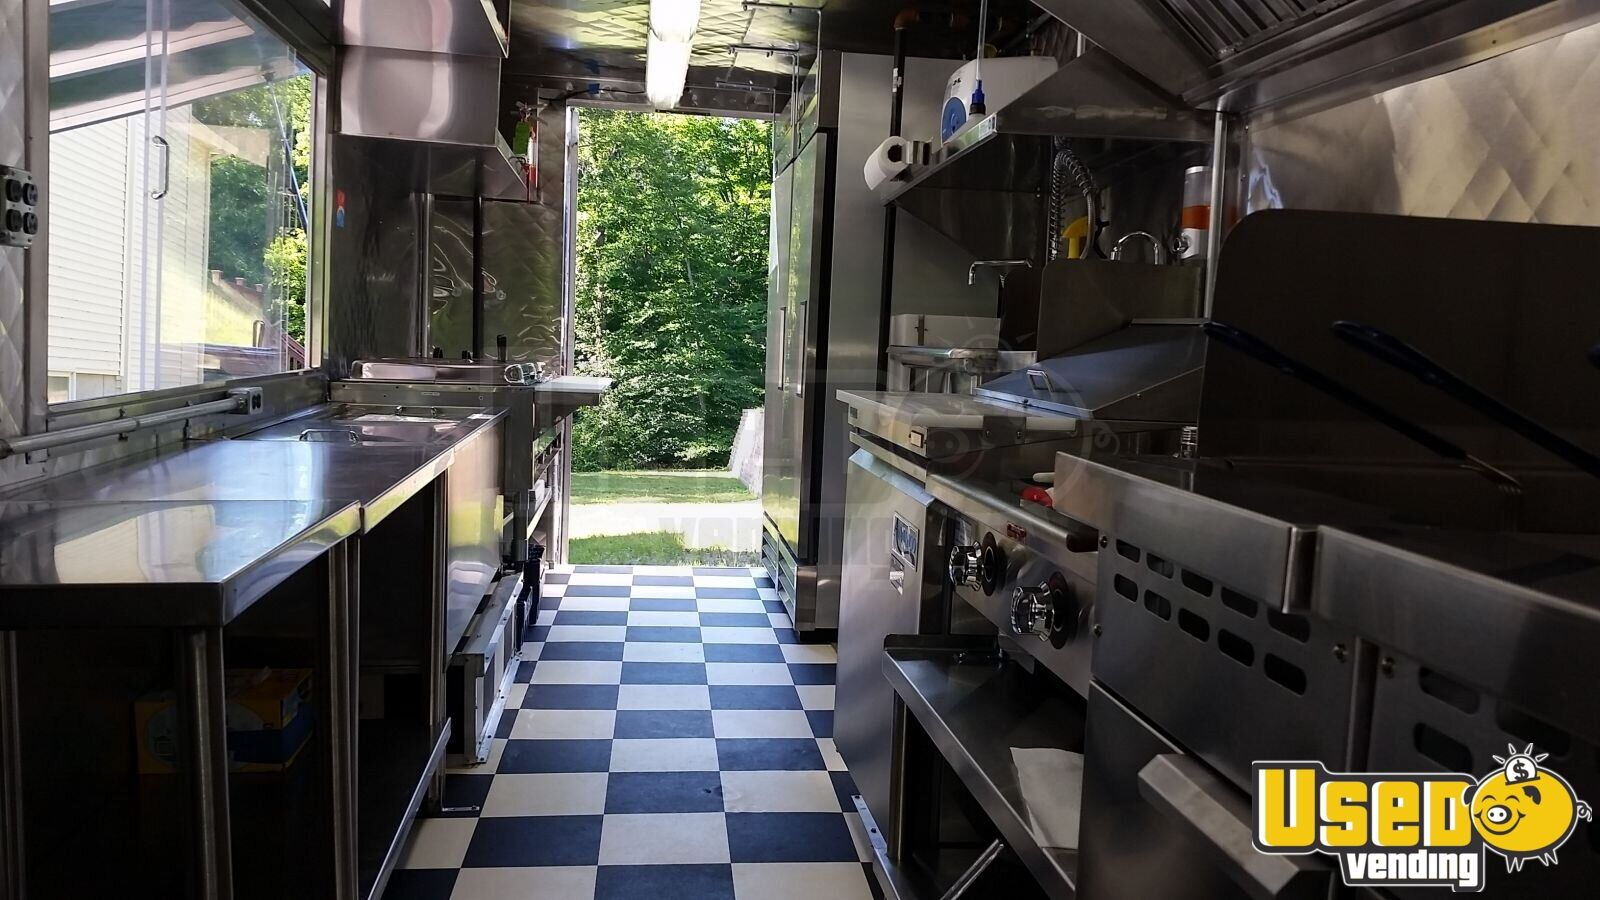 Chevy P-30 / Grumman Mobile Kitchen Food Truck for Sale in New York - 9